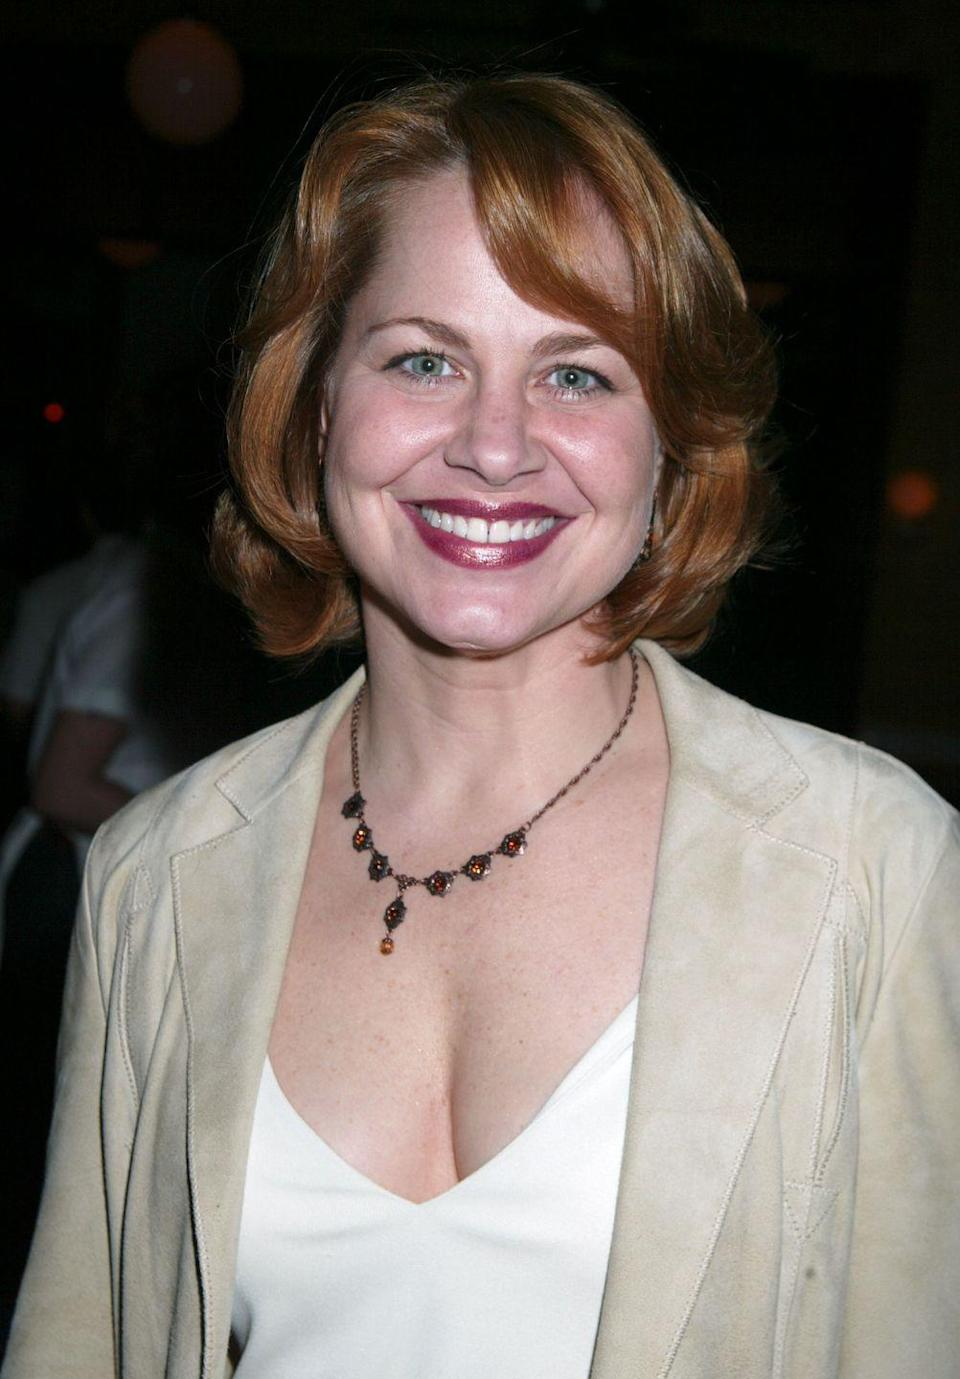 """<p>Lovejoy took Rhonda Pearlman from an assistant state's attorney to a judge throughout her five seasons on <em>The Wire</em>. She said to <a href=""""https://parade.com/493678/sks14c/american-gothic-star-deirdre-lovejoy-i-certainly-want-people-to-like-me/"""" rel=""""nofollow noopener"""" target=""""_blank"""" data-ylk=""""slk:Parade"""" class=""""link rapid-noclick-resp""""><em>Parade</em></a> of the role, """"That experience was special not only because of the content—a Peabody Award-Winning script and just brilliant writing—but I got to take the character from start to storyline finish over a five-year period.""""</p>"""